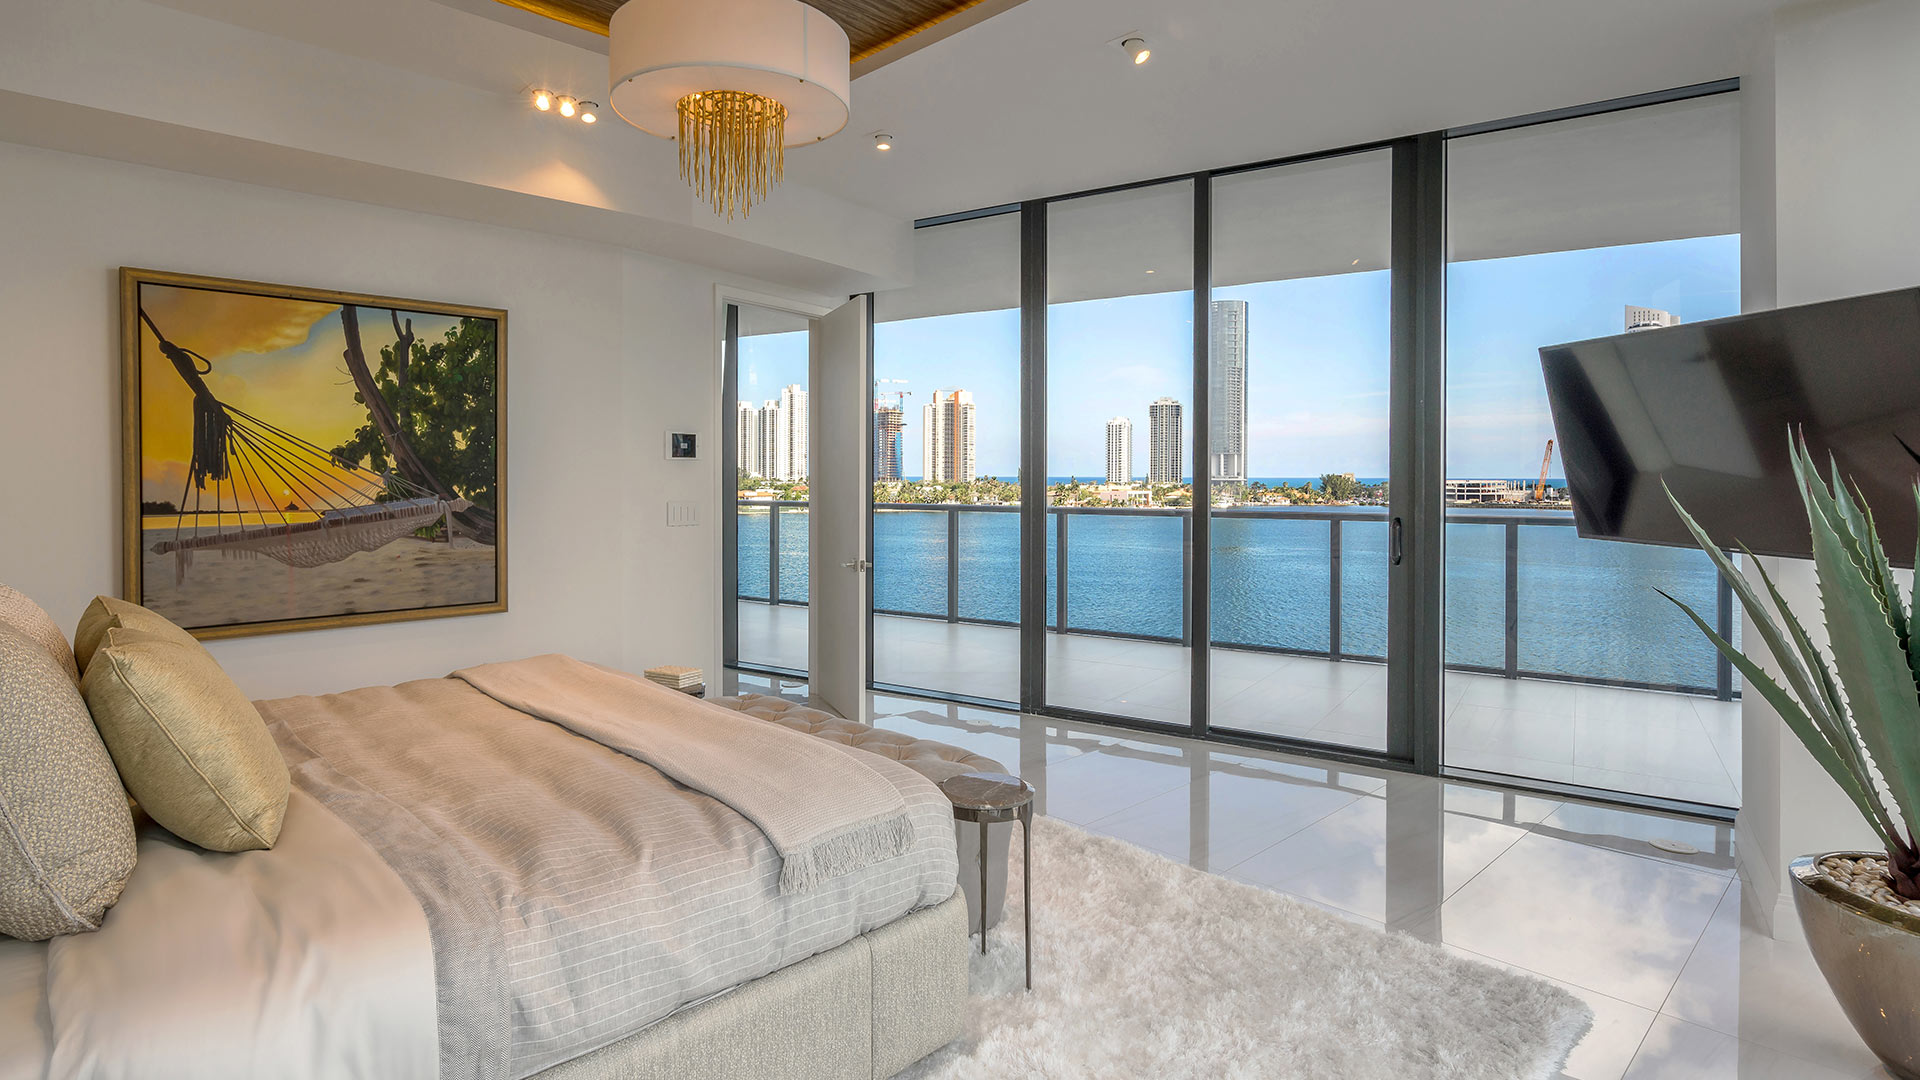 Prive Island Penthouses for sale